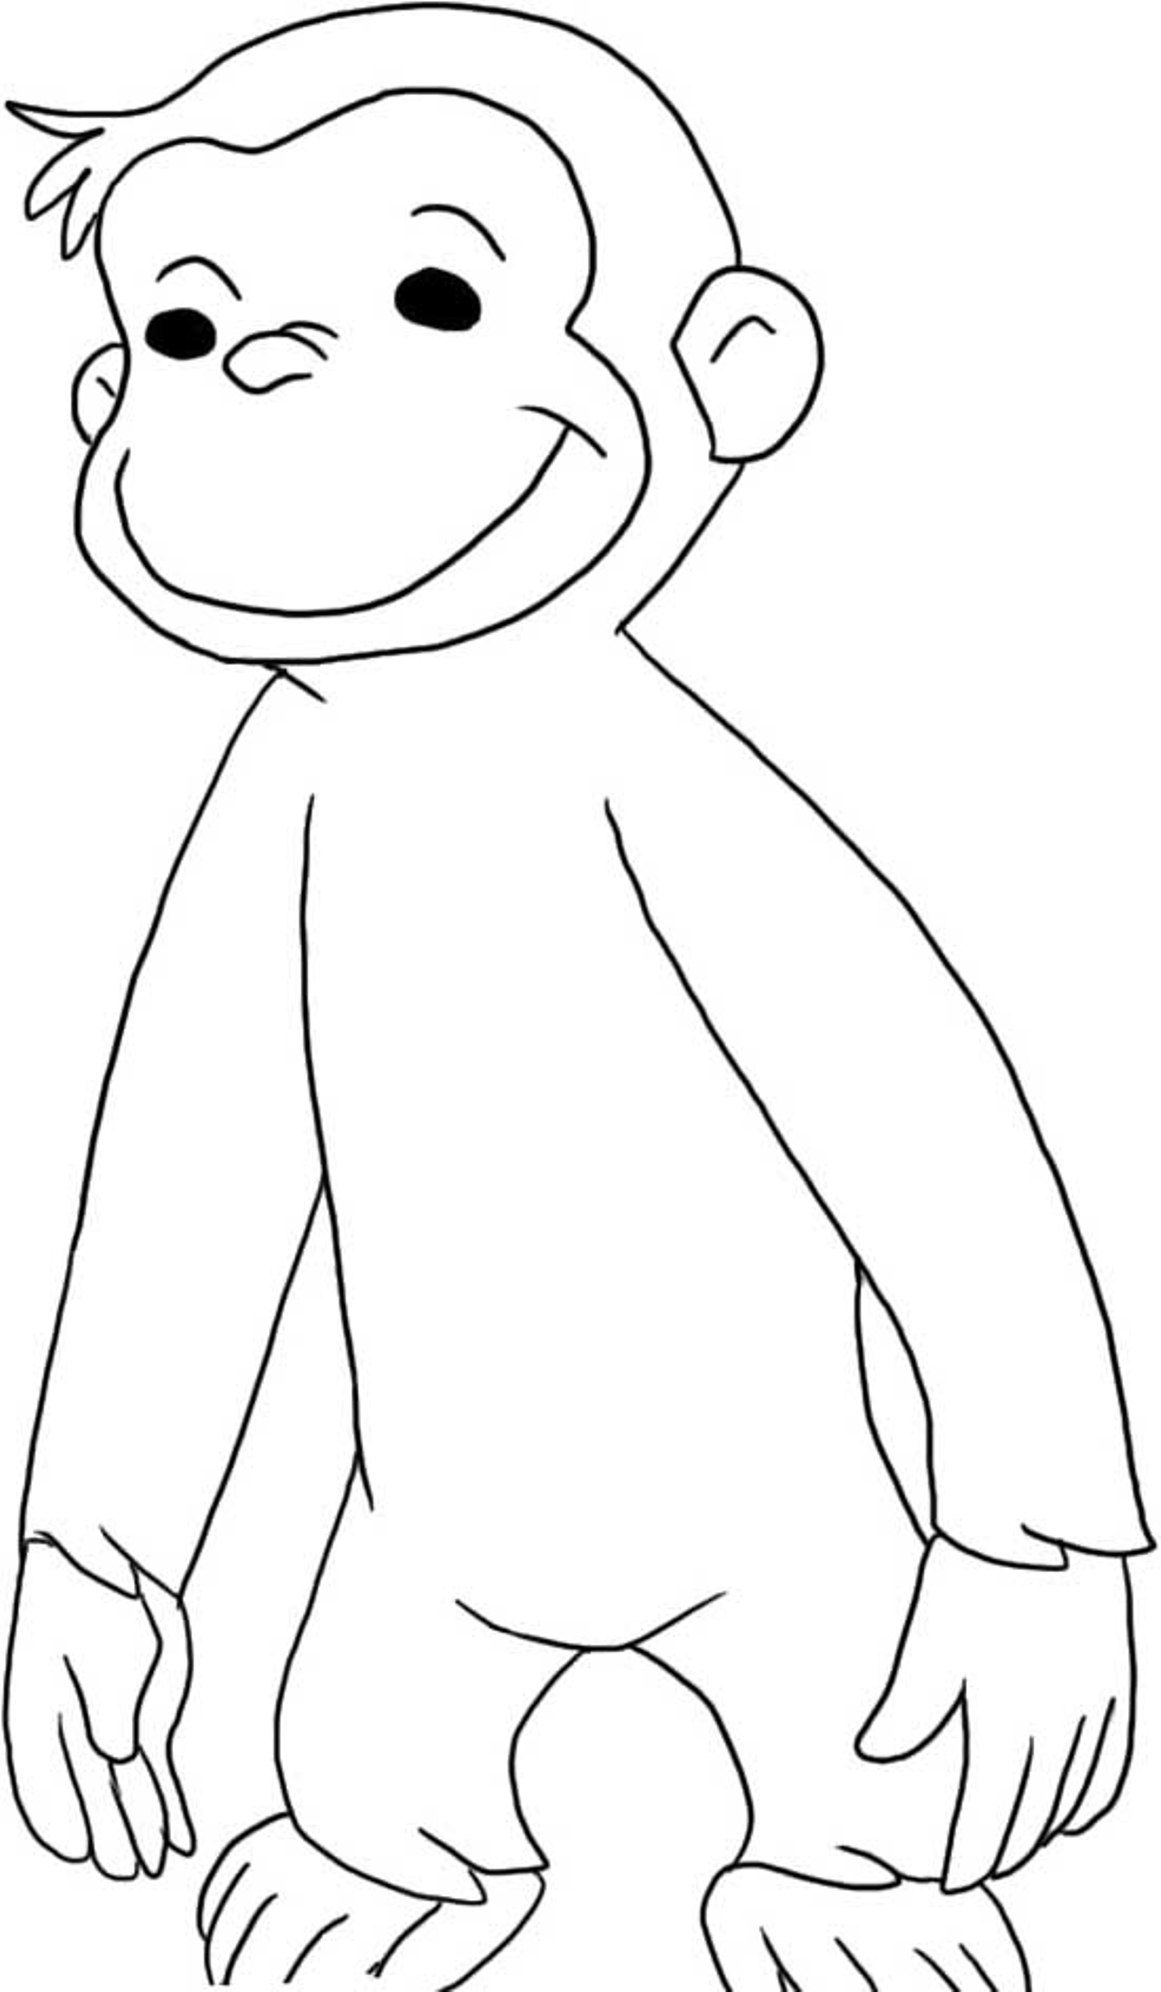 curious coloring pages - photo#7